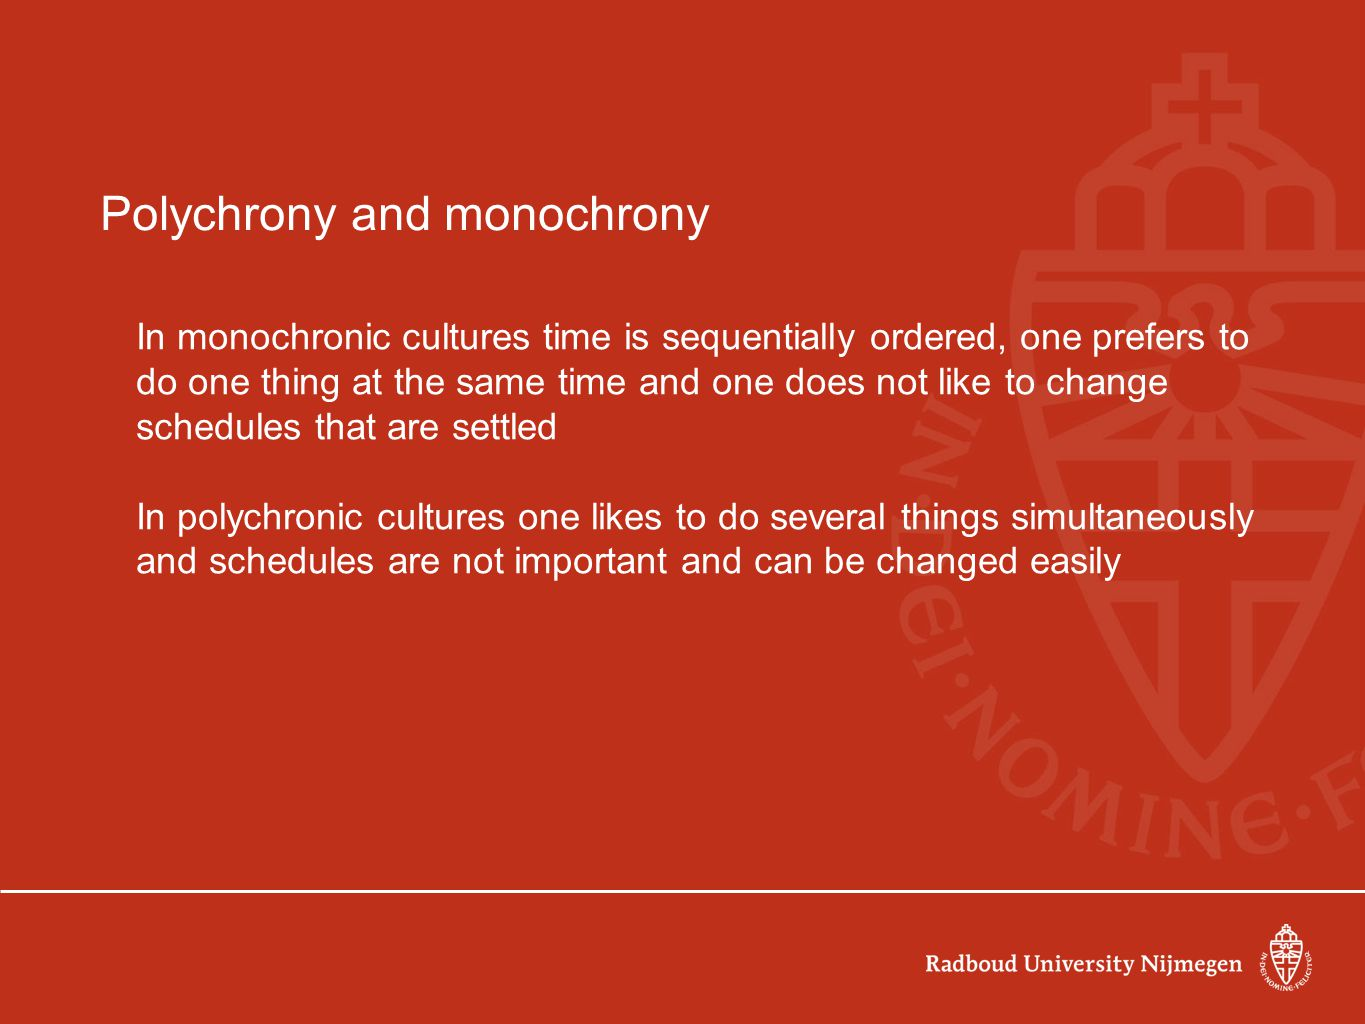 Polychrony and monochrony In monochronic cultures time is sequentially ordered, one prefers to do one thing at the same time and one does not like to